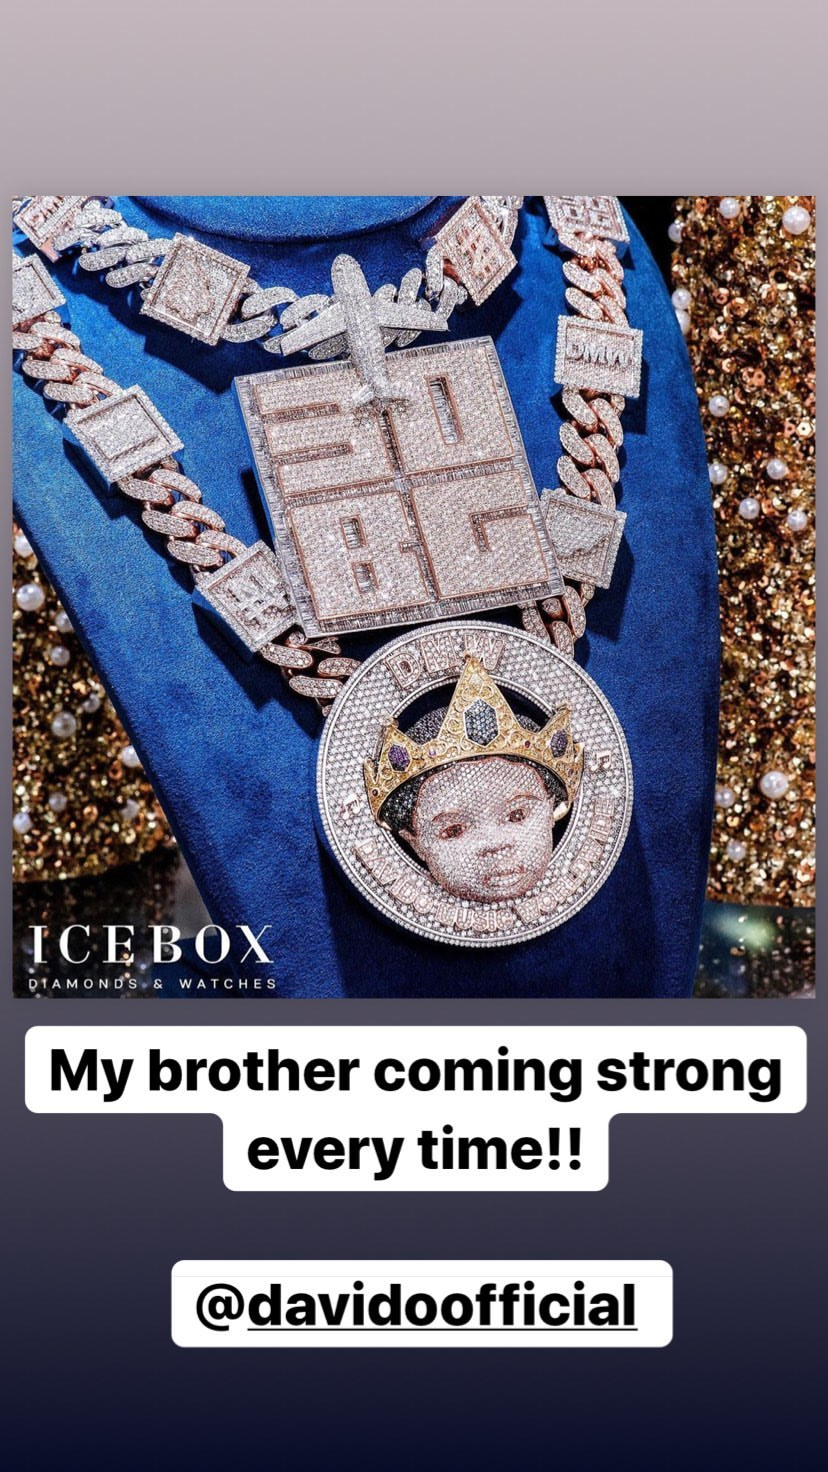 I love you Davido, you're my brother - Davido's Jeweler, Ice Box Zahir hails him after buying new chain (Photos)